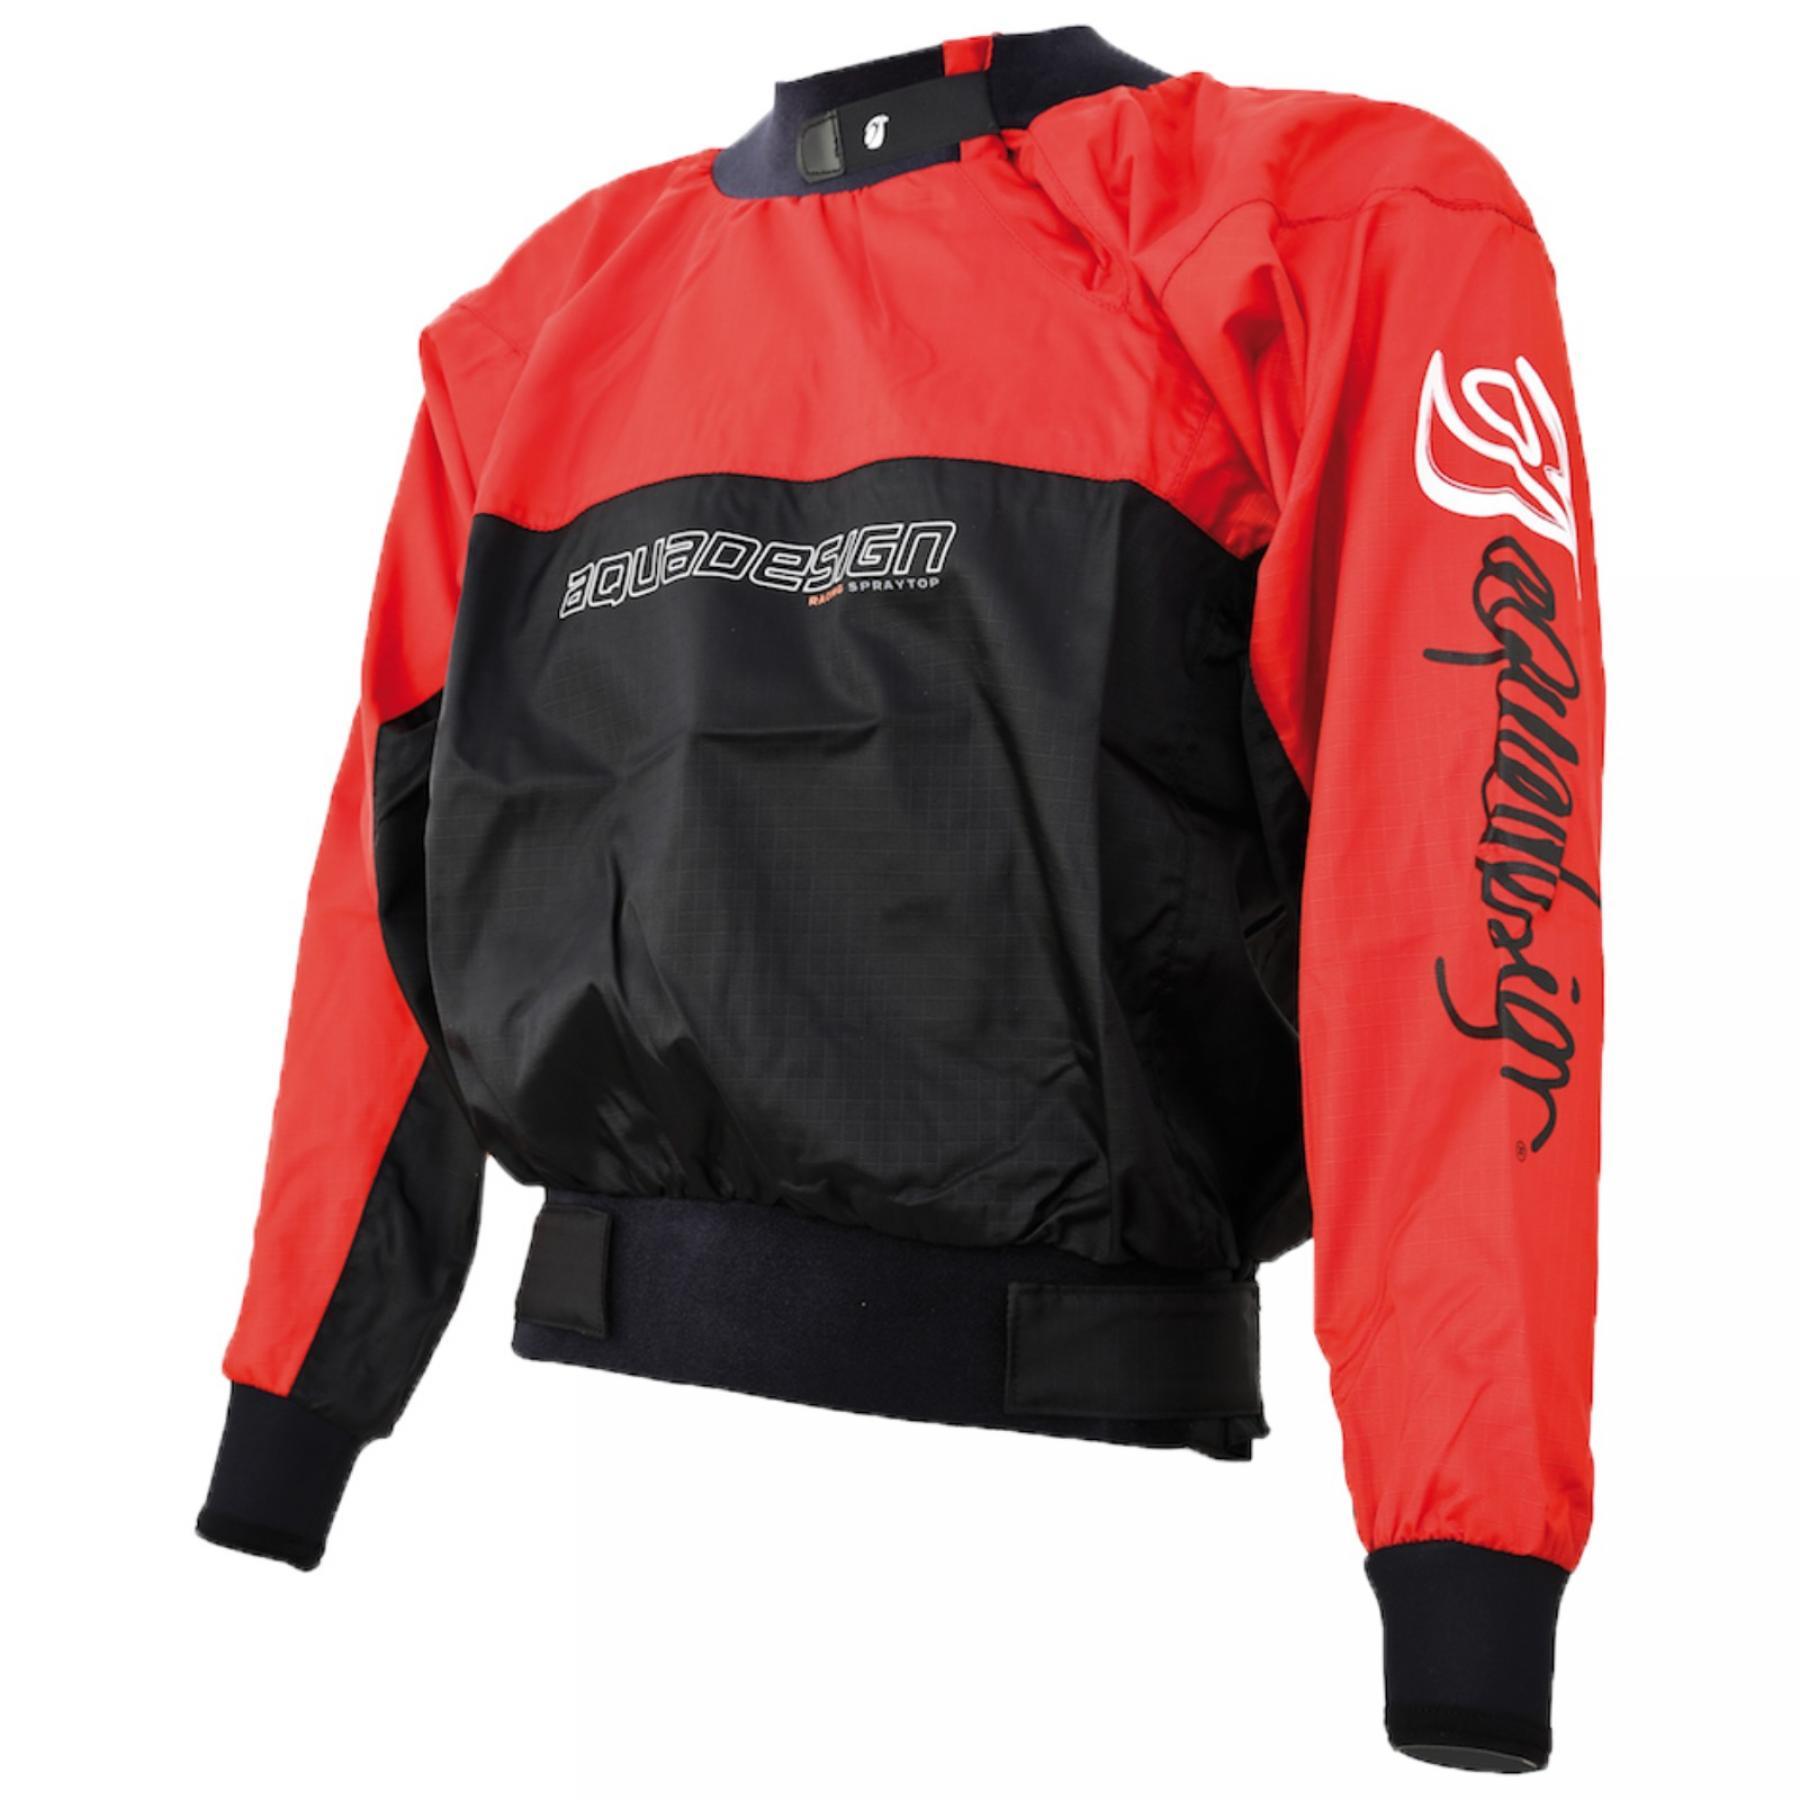 Aquadesign Paddeljacke Racing